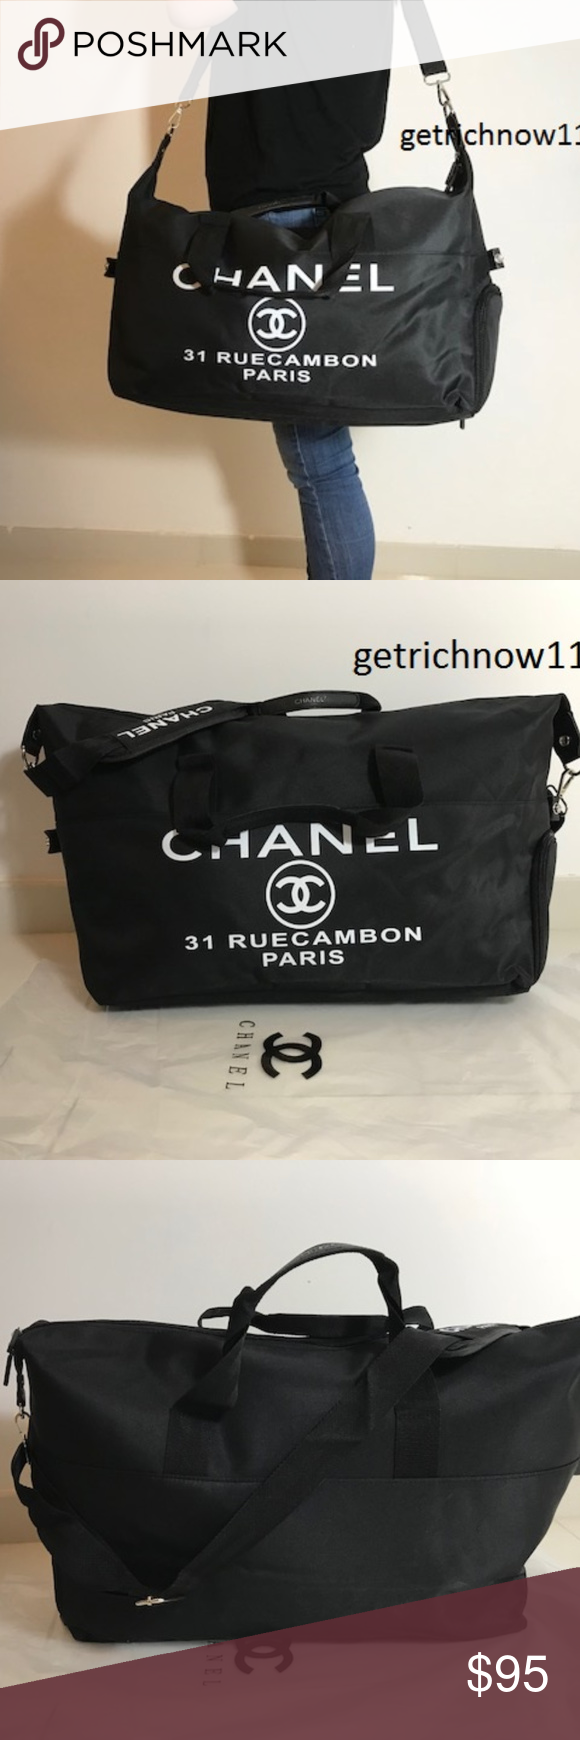 353de0467739 Chanel VIP Nylon Travel Bag Duffle Gym new Large ! Brand New Authentic  Chanel